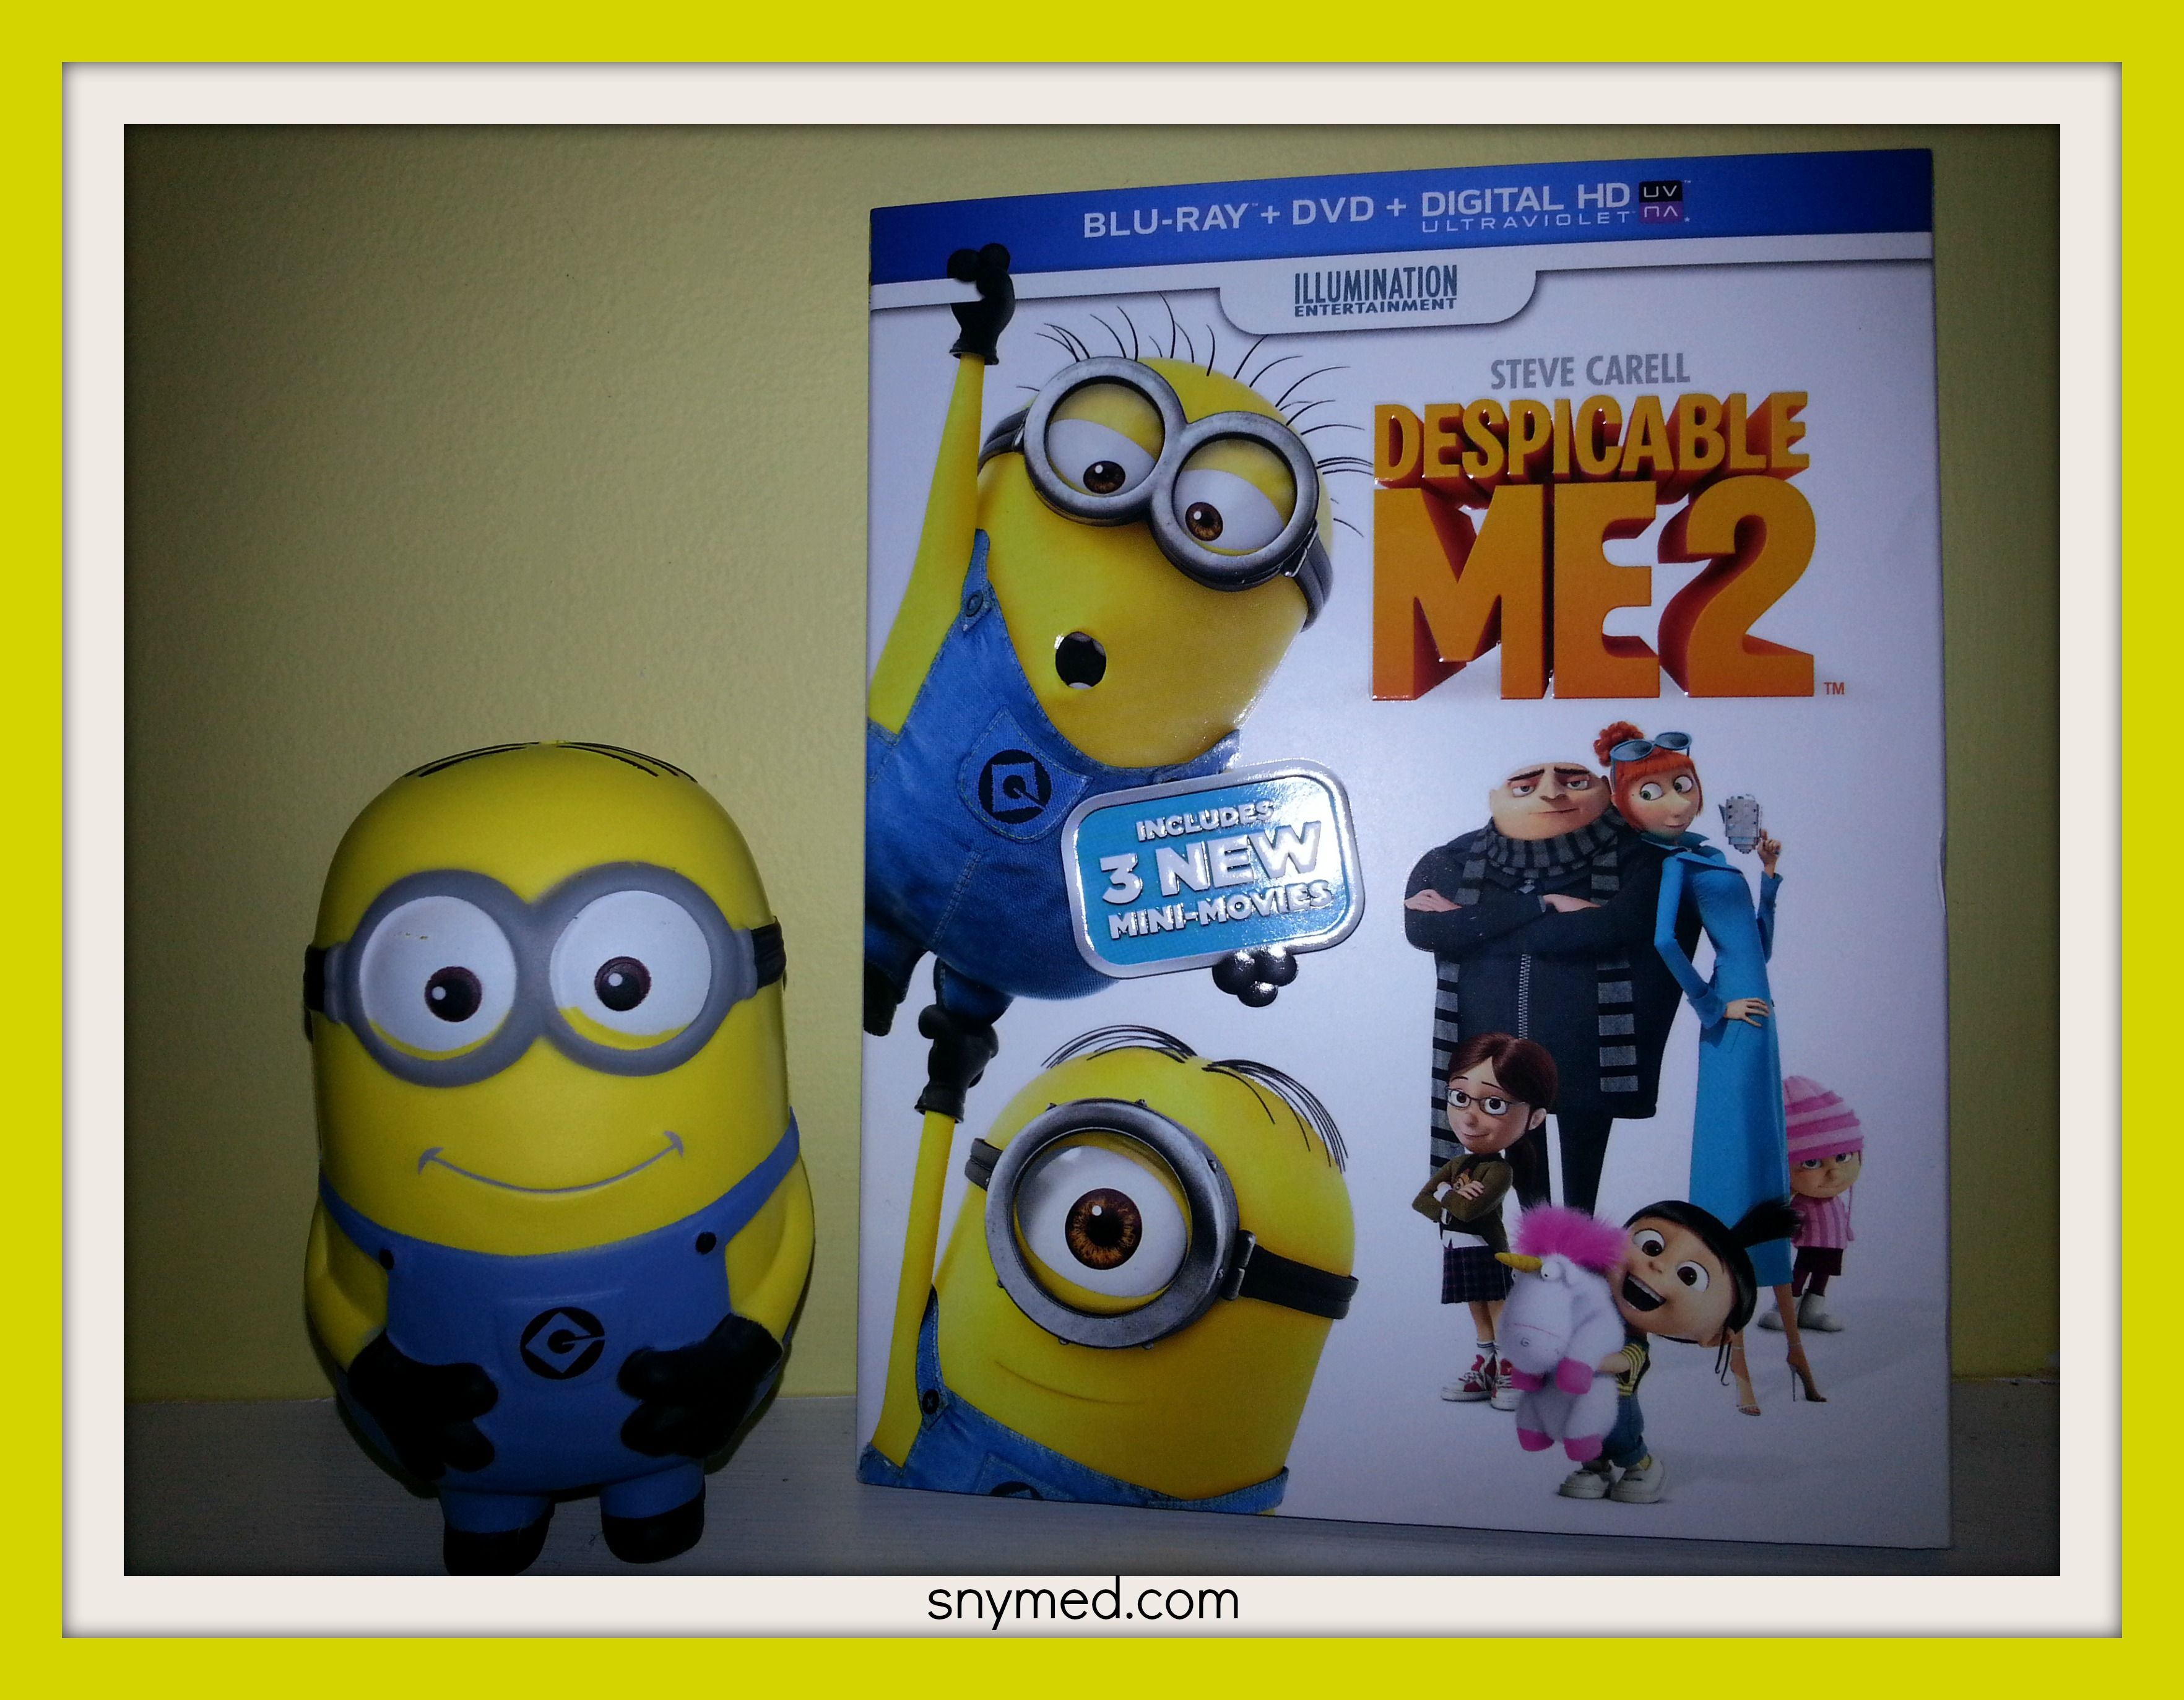 Despicable Me 2 is now on Blu-ray/DVD - just in time for Christmas ...